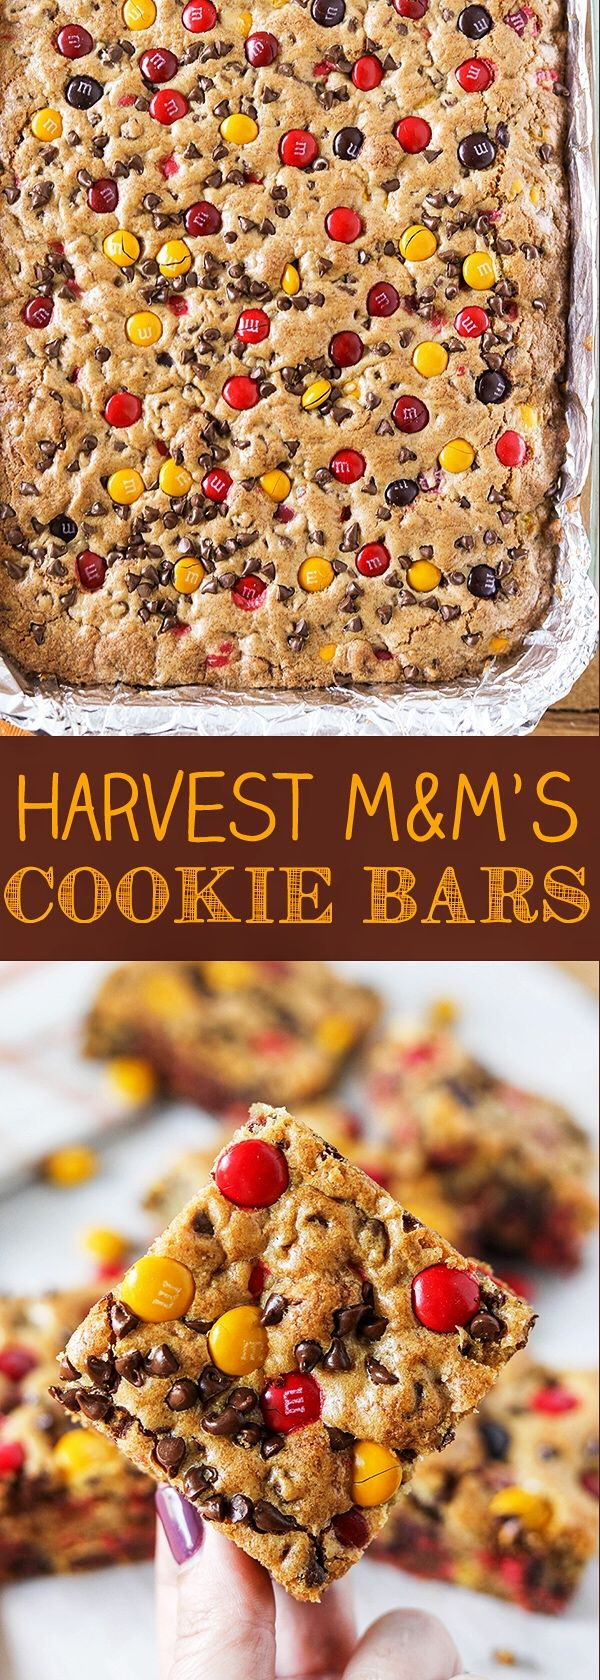 Harvest M&M's Cookie Bars – Holiday Baking